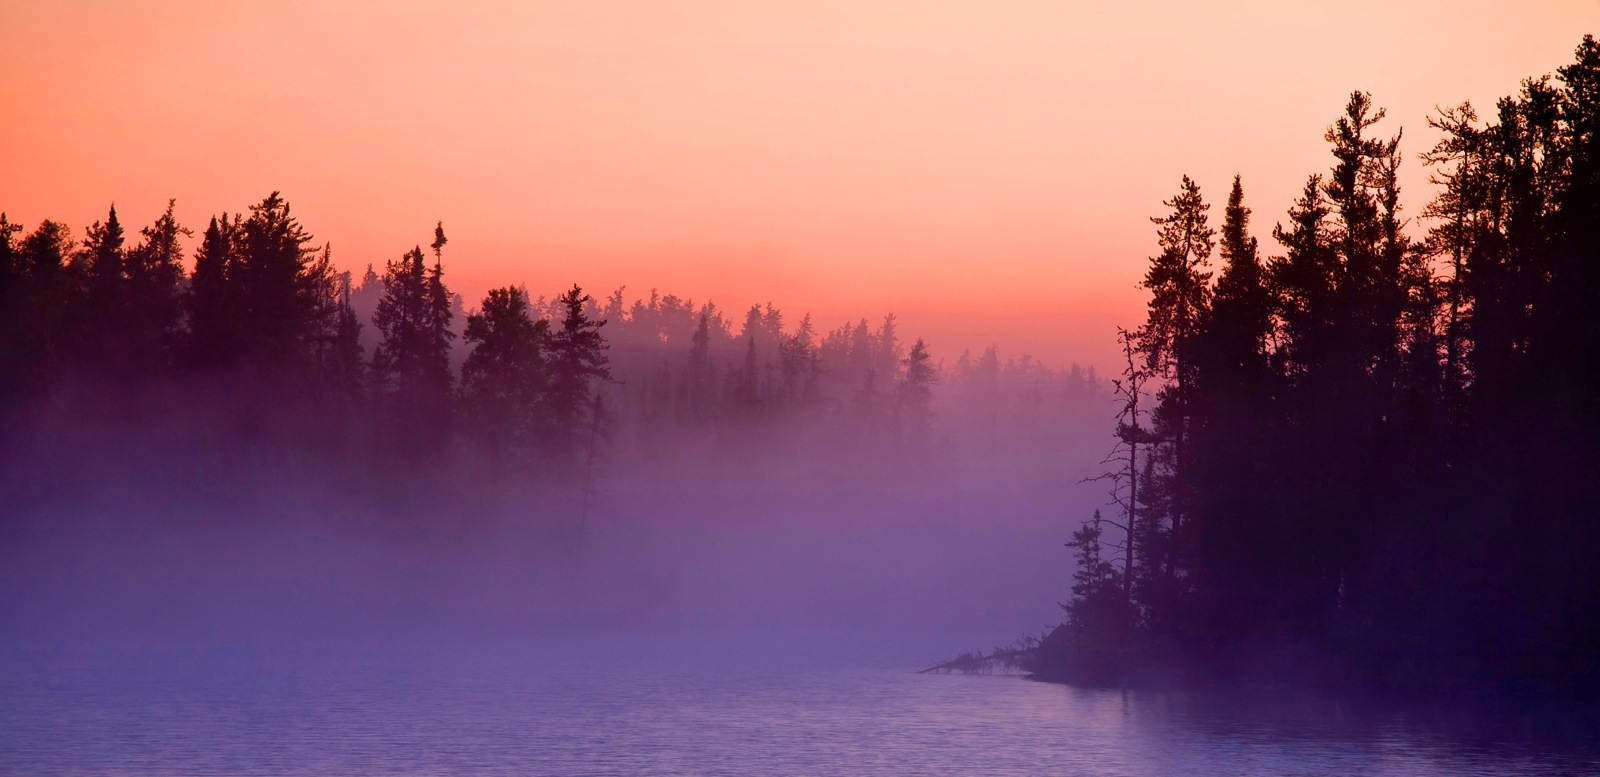 Fog rolls through an opening between two islands as the setting sun silhouettes pine trees.